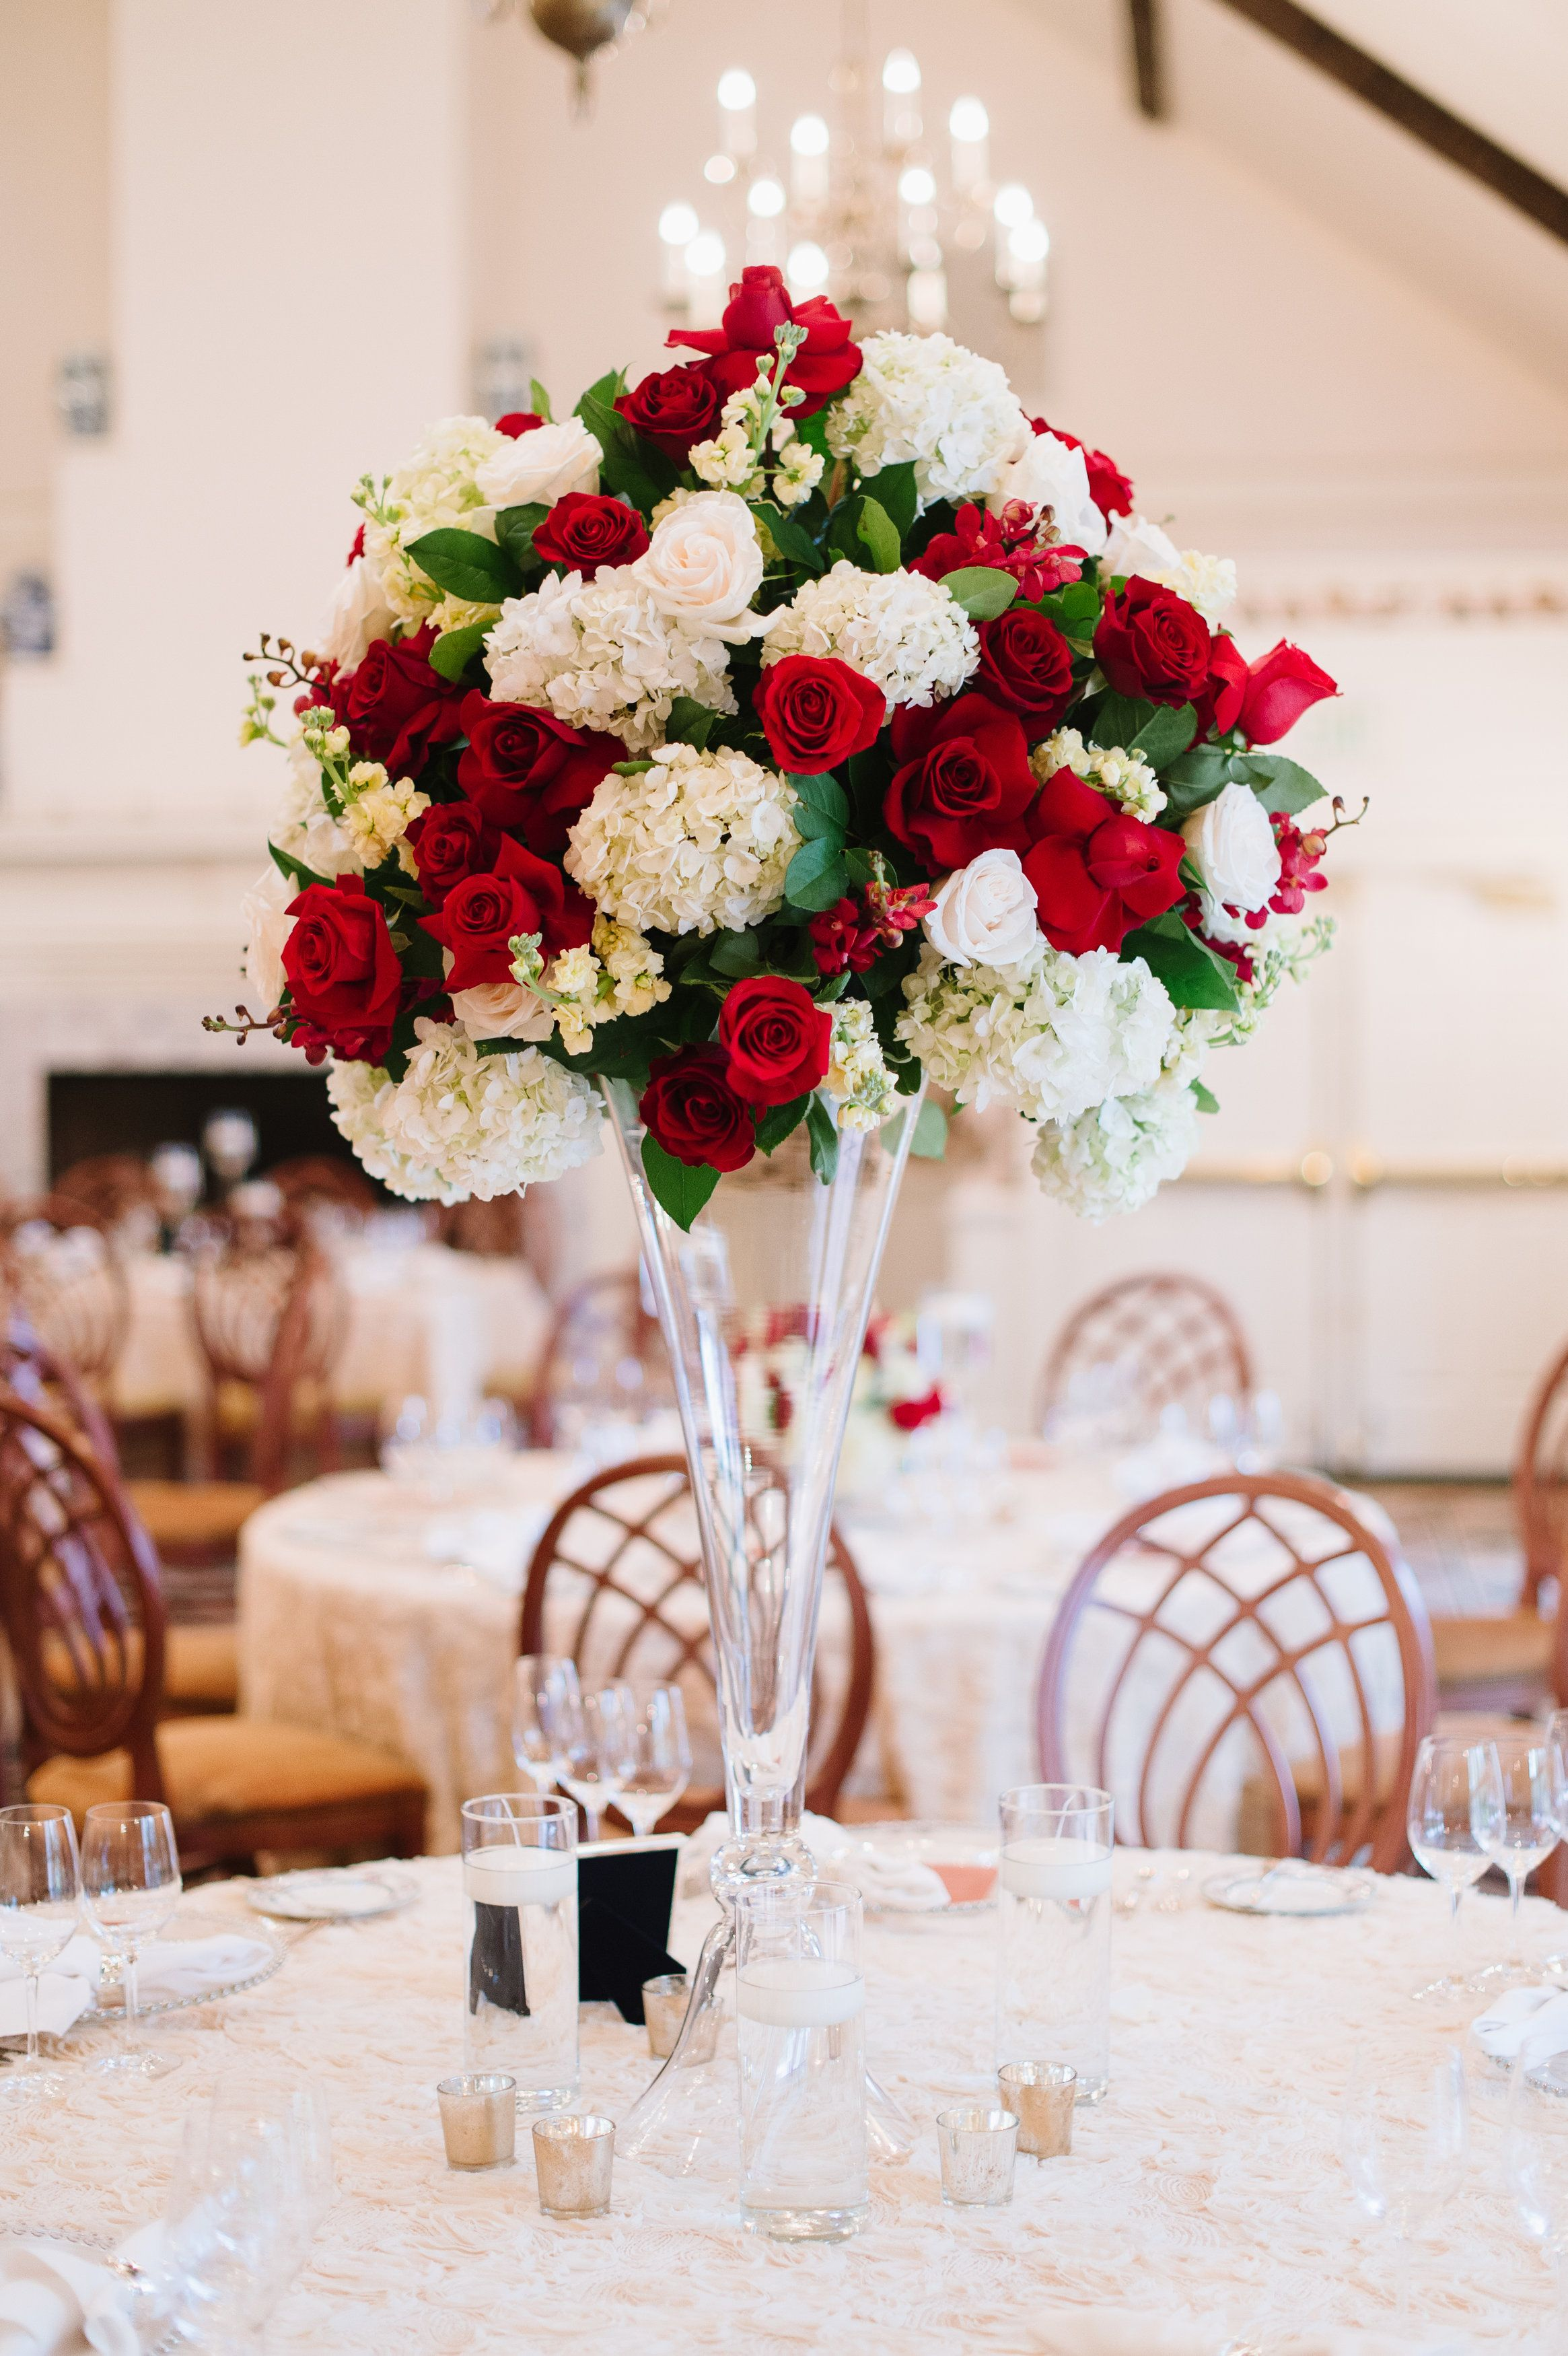 15+ Best New Red And White Wedding Centerpiece